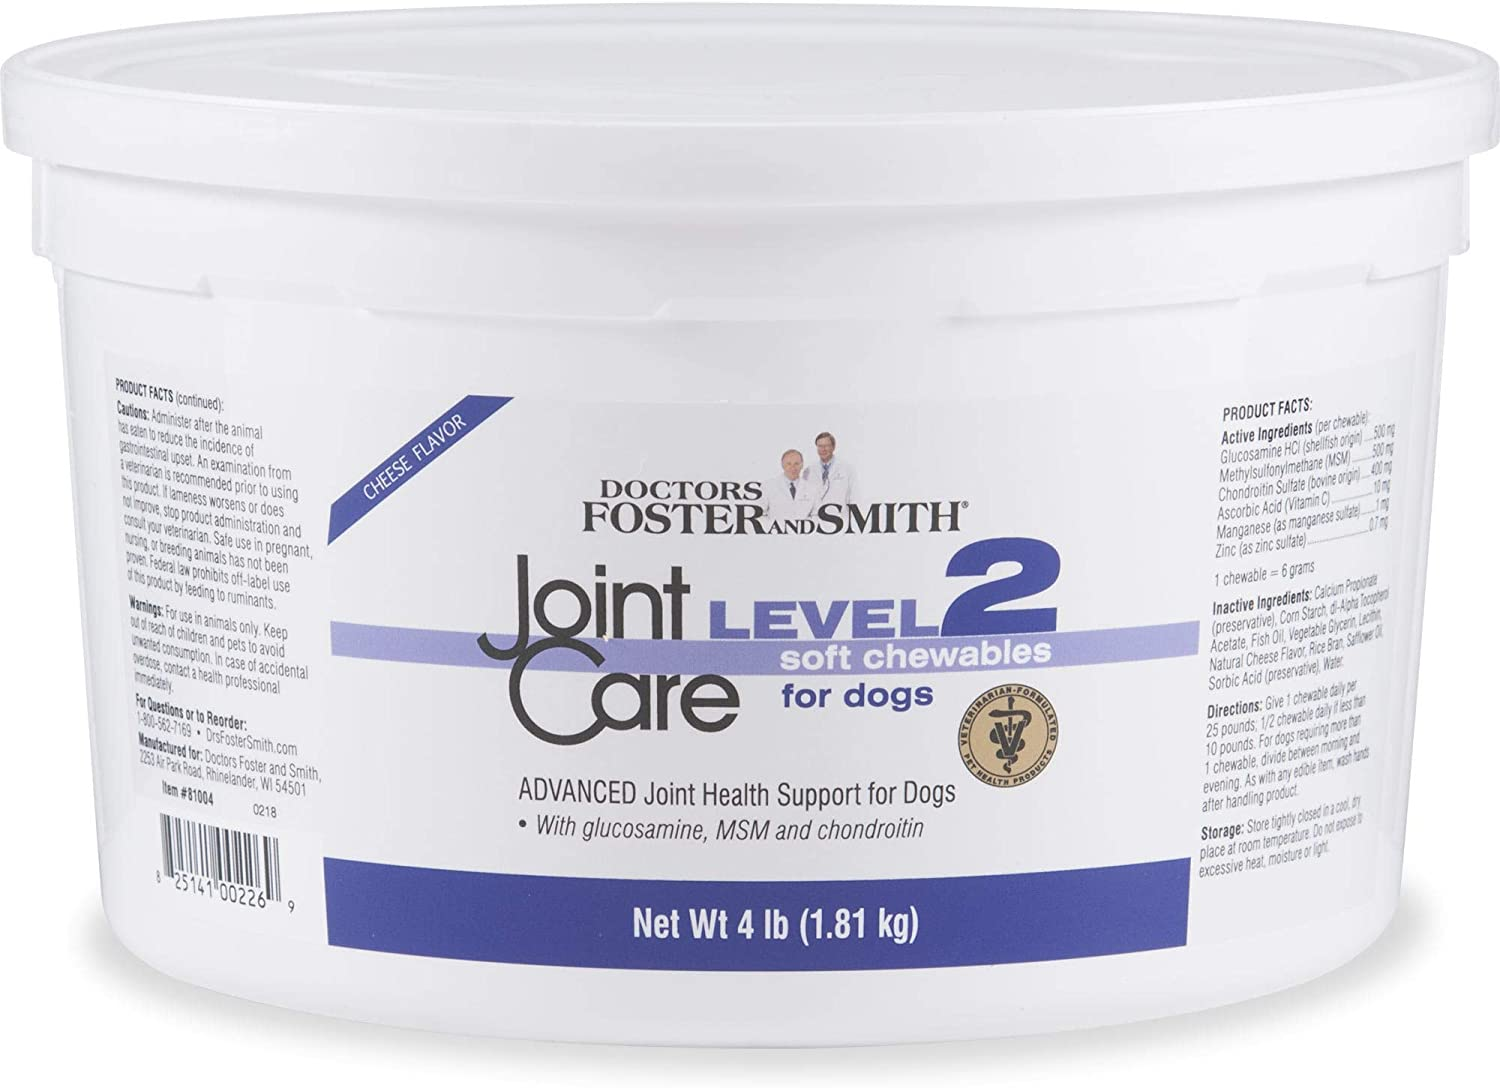 DRS. Foster and Smith Level 2 Joint Care Soft Chews for Dogs, 4 lbs.